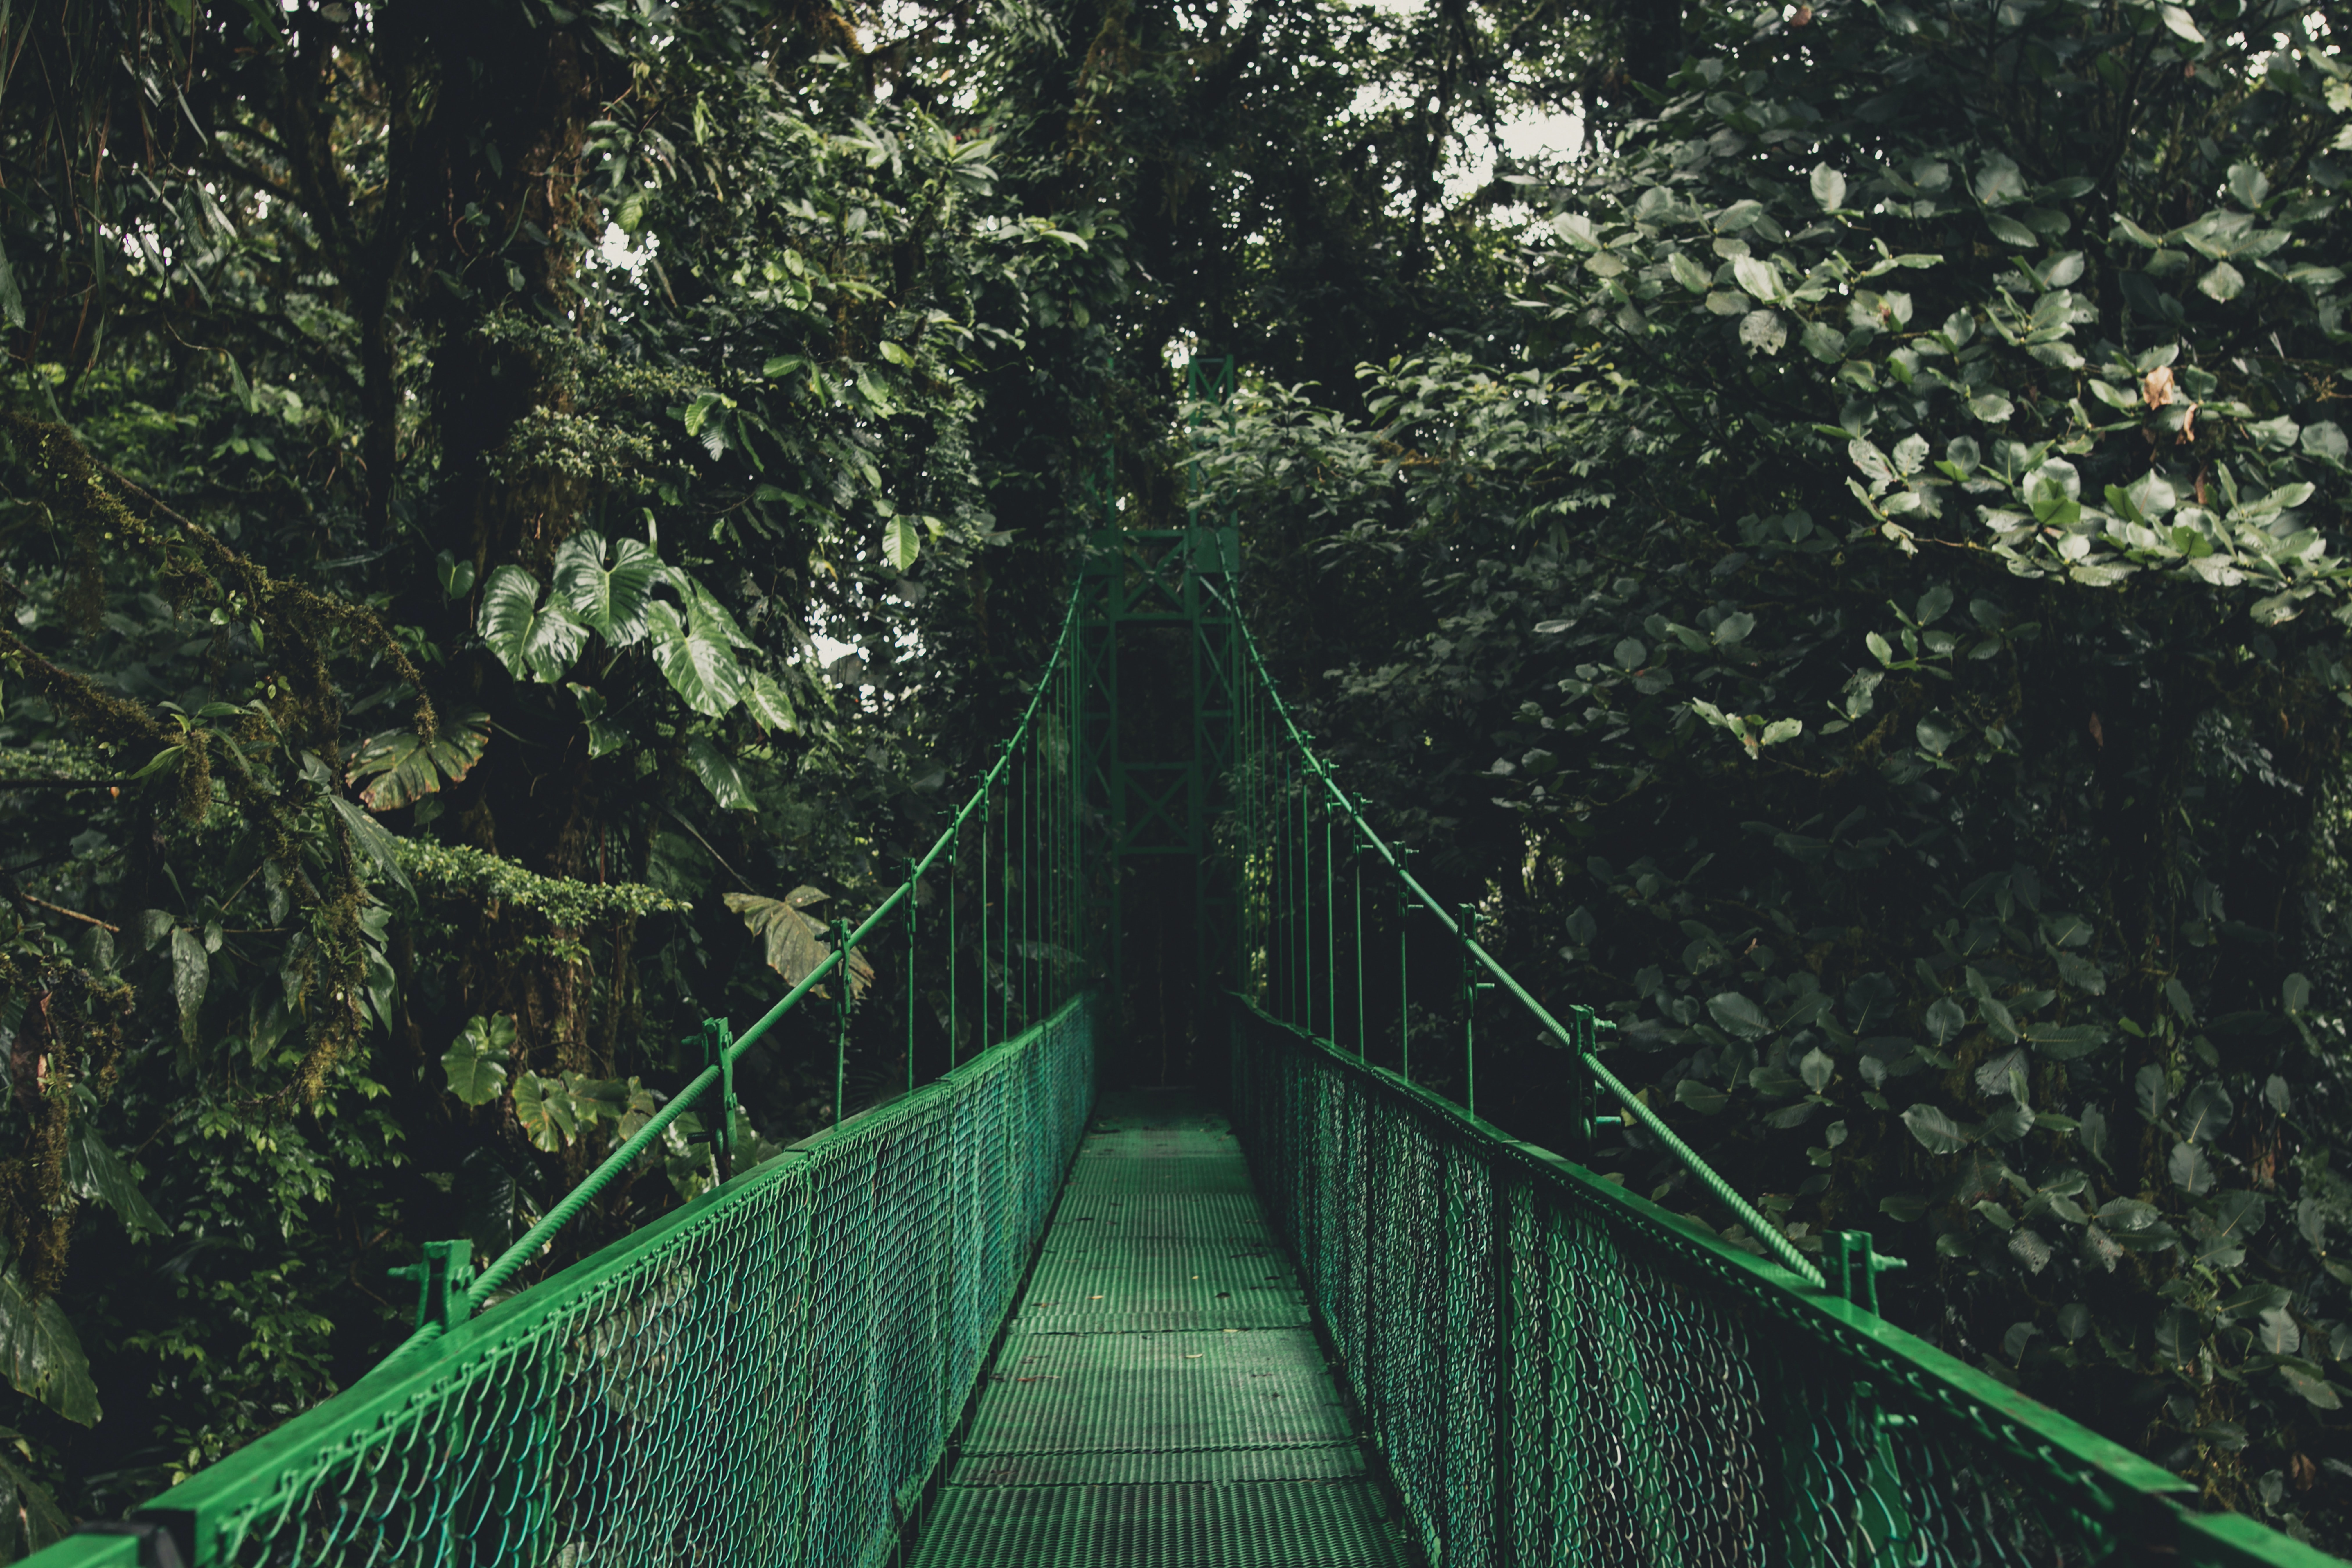 green bridge near trees